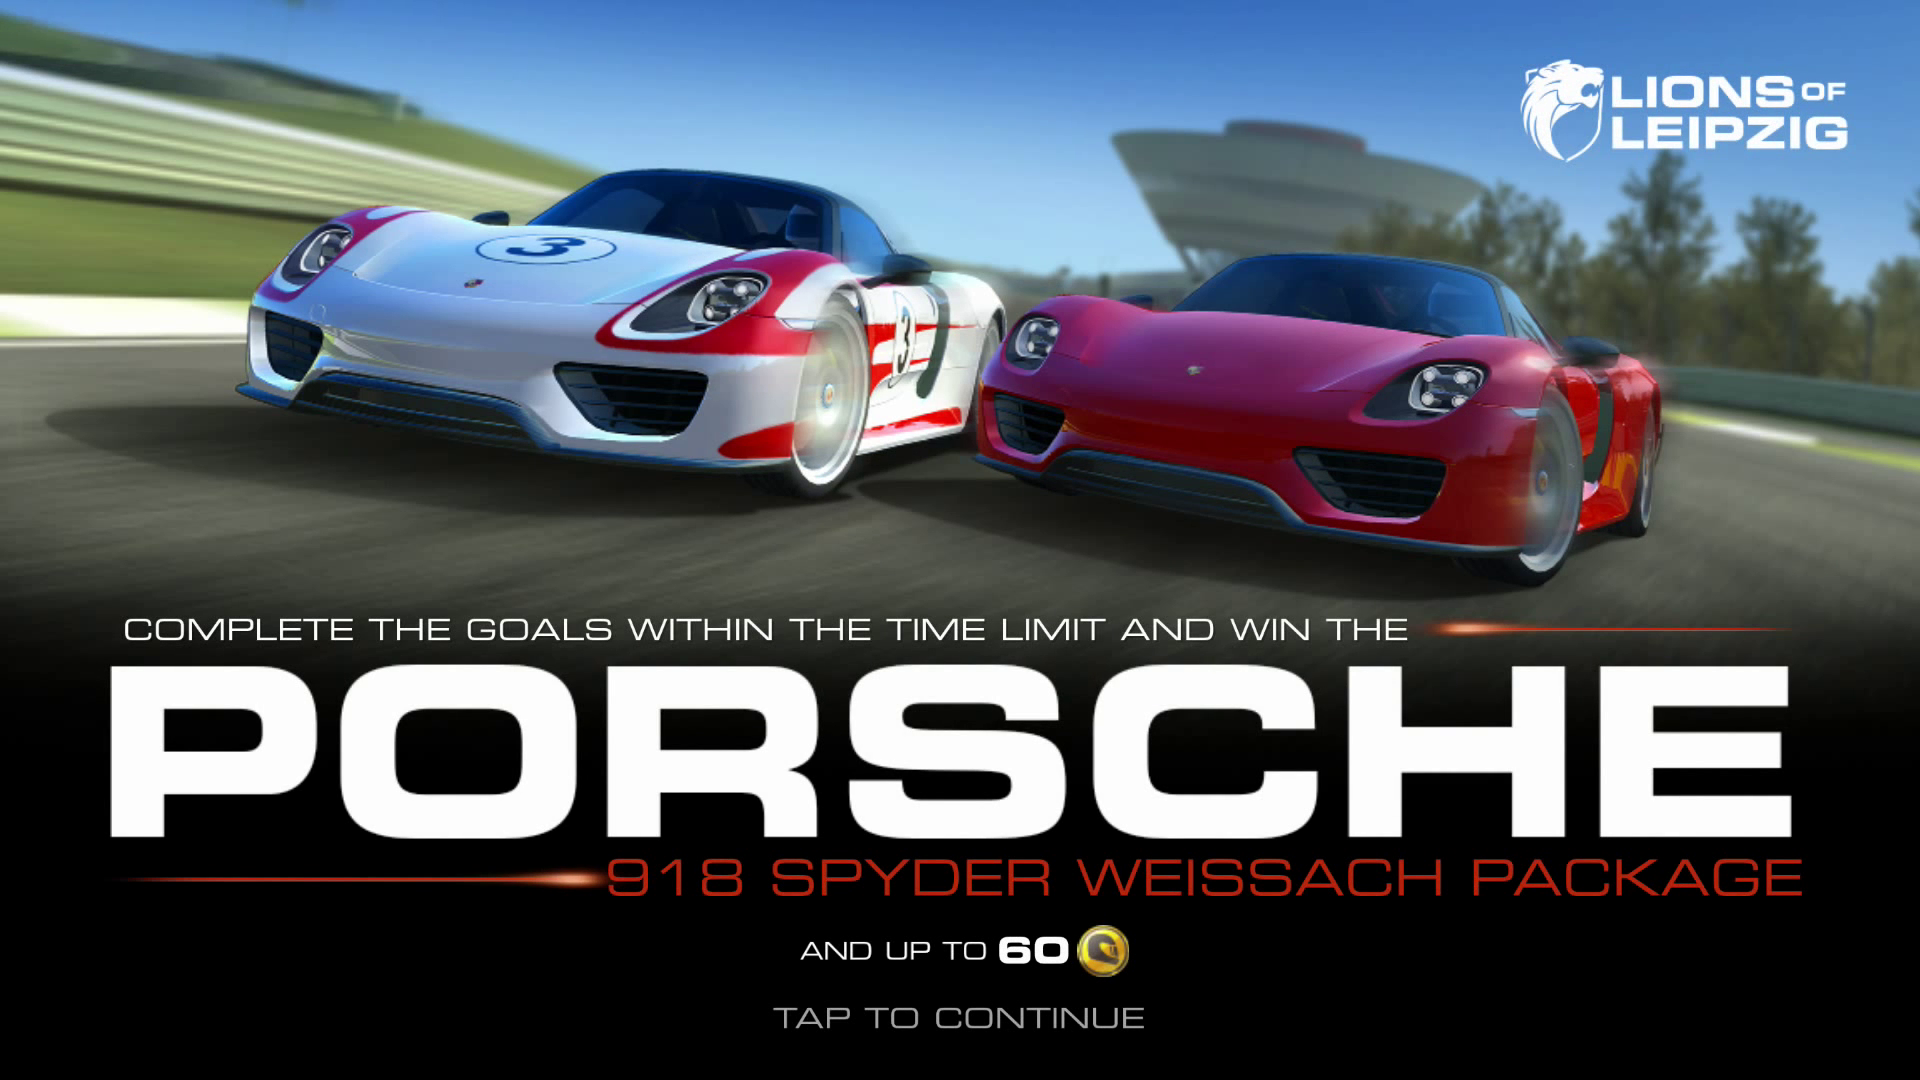 latest?cb=20151125142630 Mesmerizing Porsche 918 Spyder with Weissach Package Price Cars Trend